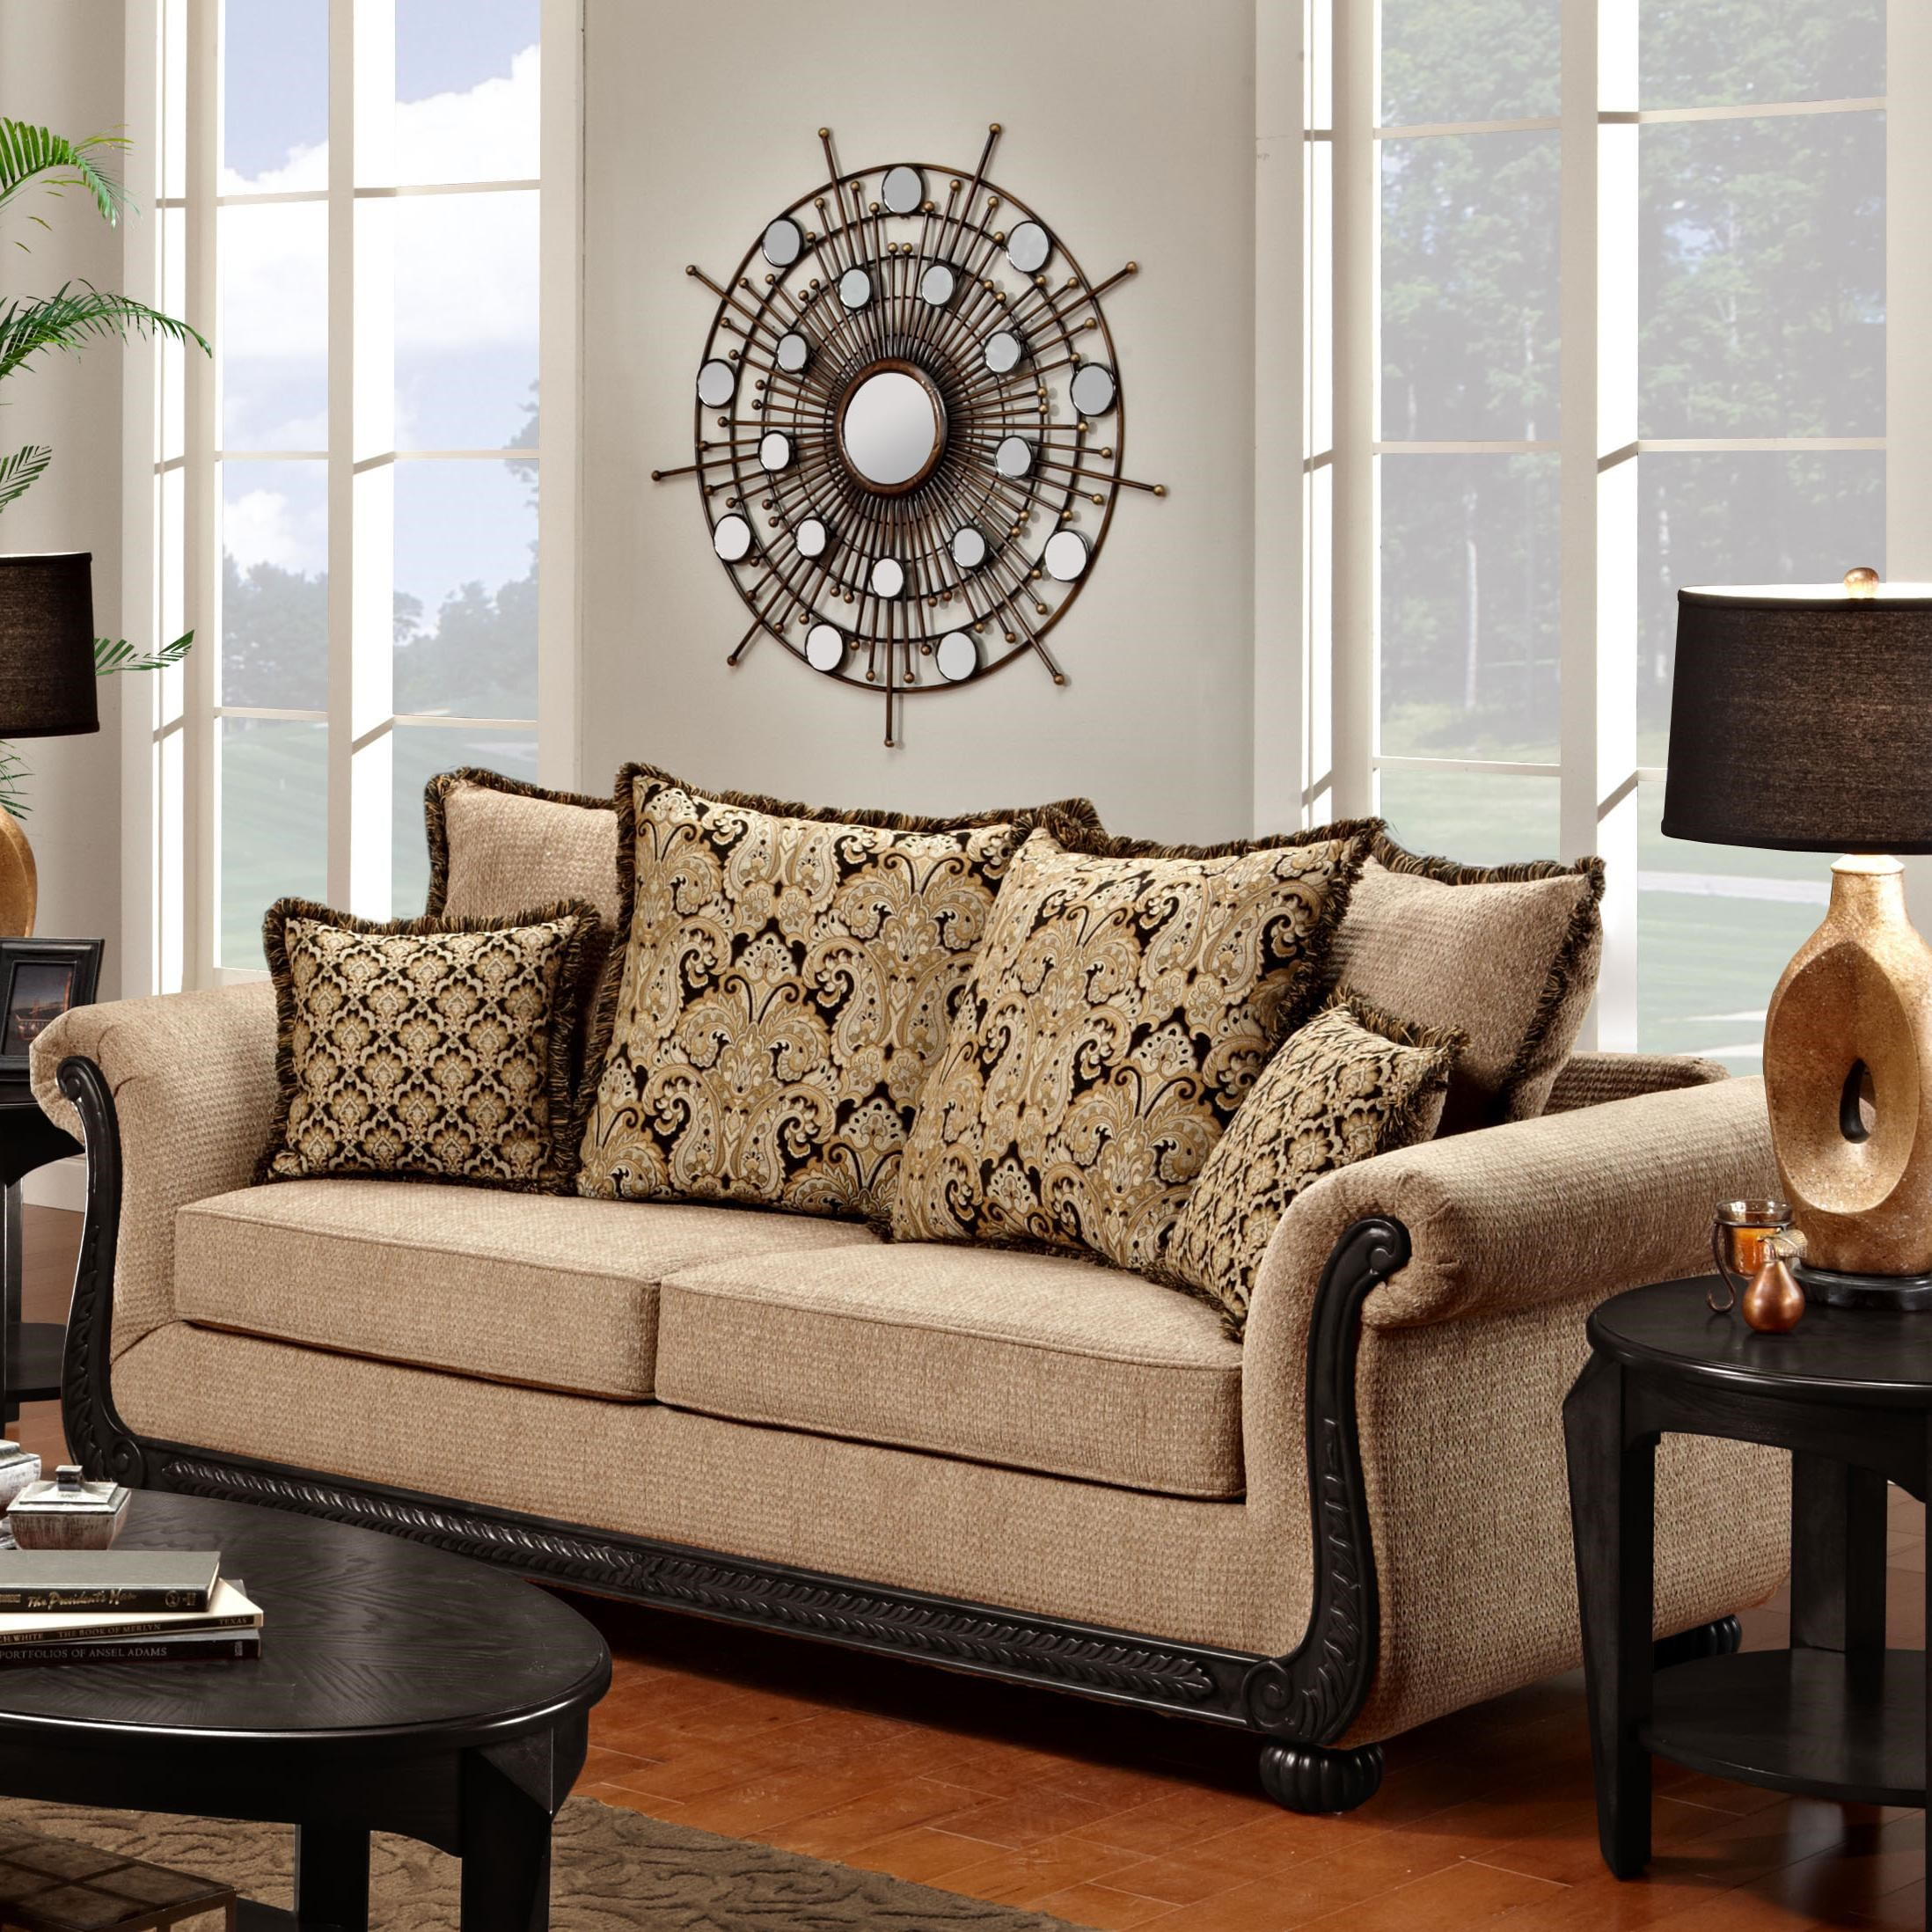 Living Room Furniture Greenville Nc washington furniture 6000 traditional rolled arm sofa with